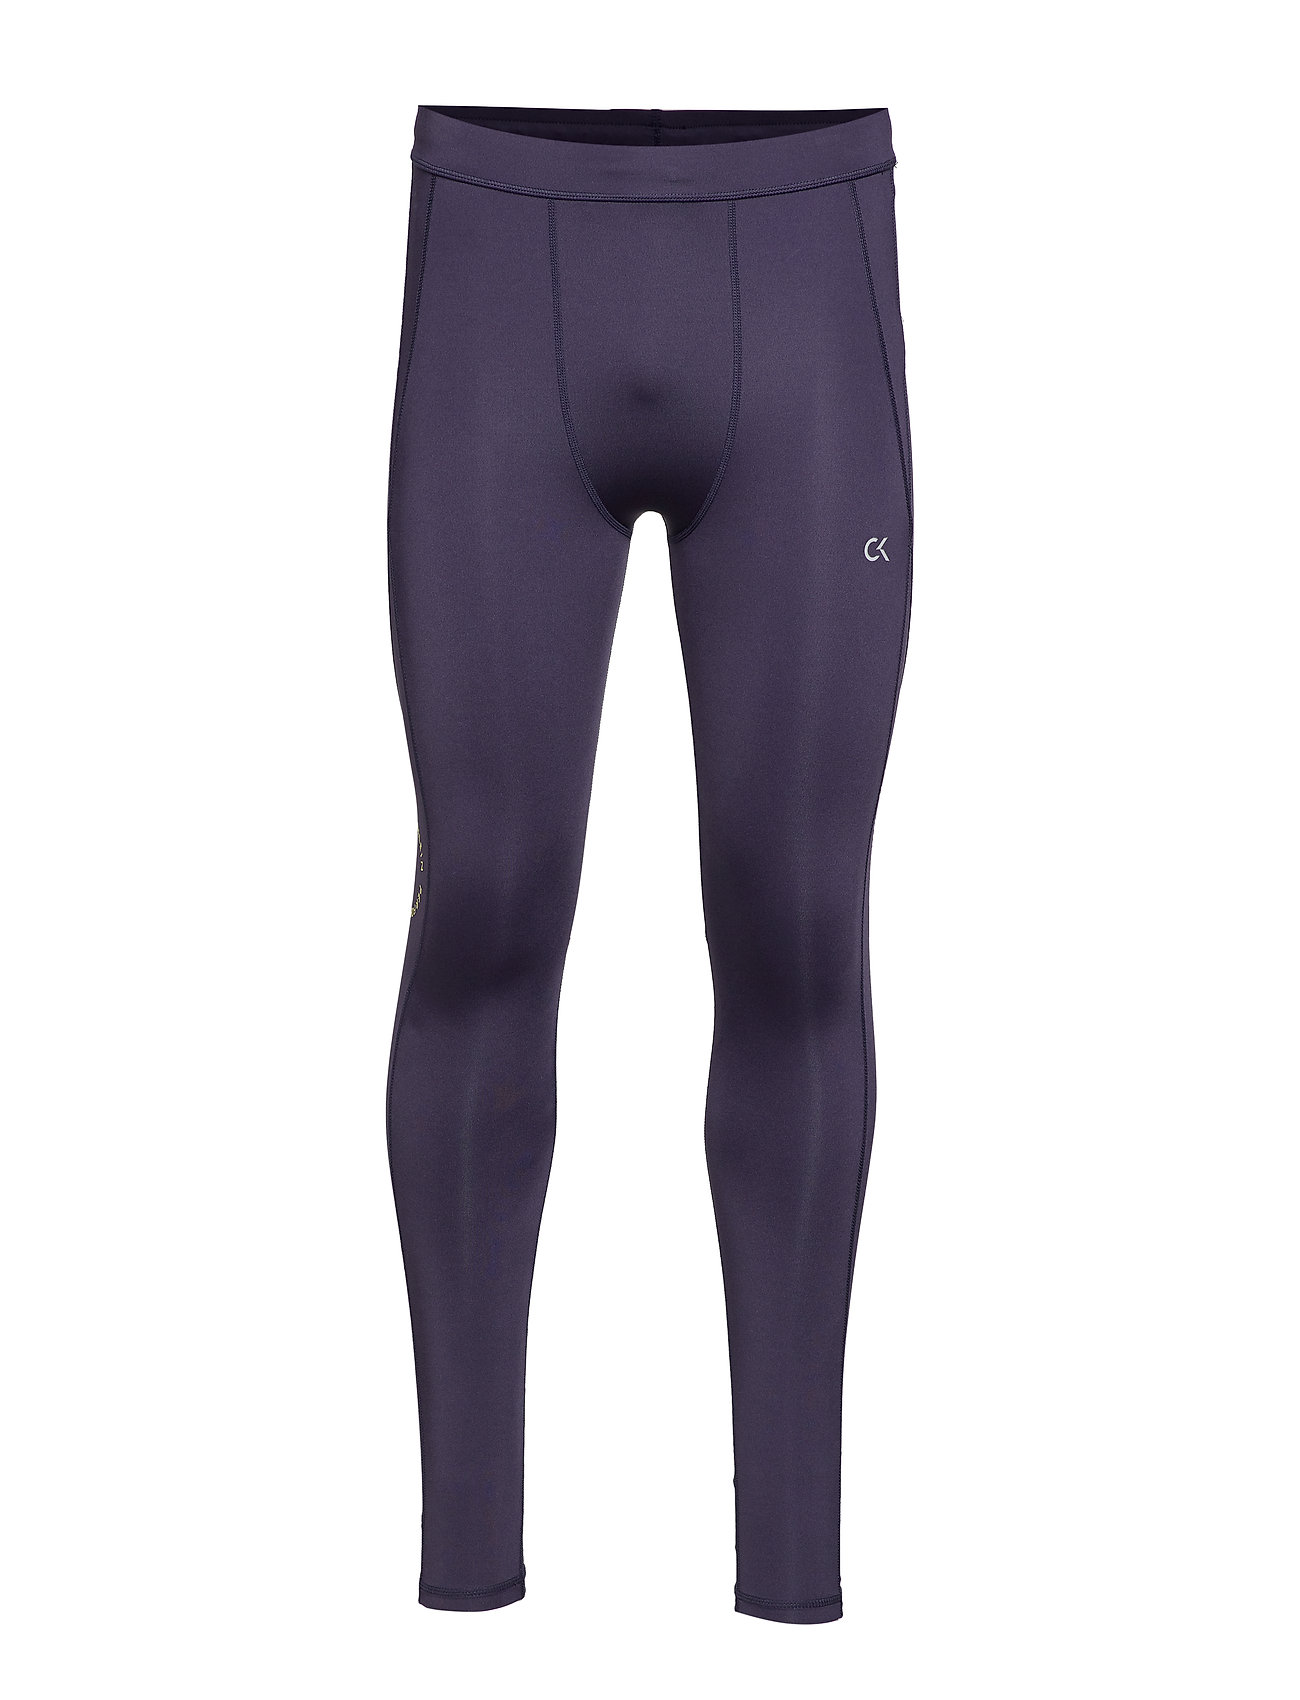 Calvin Klein Performance FULL LENGTH TIGHT - NIGHT SKY/SULPHUR SPRING